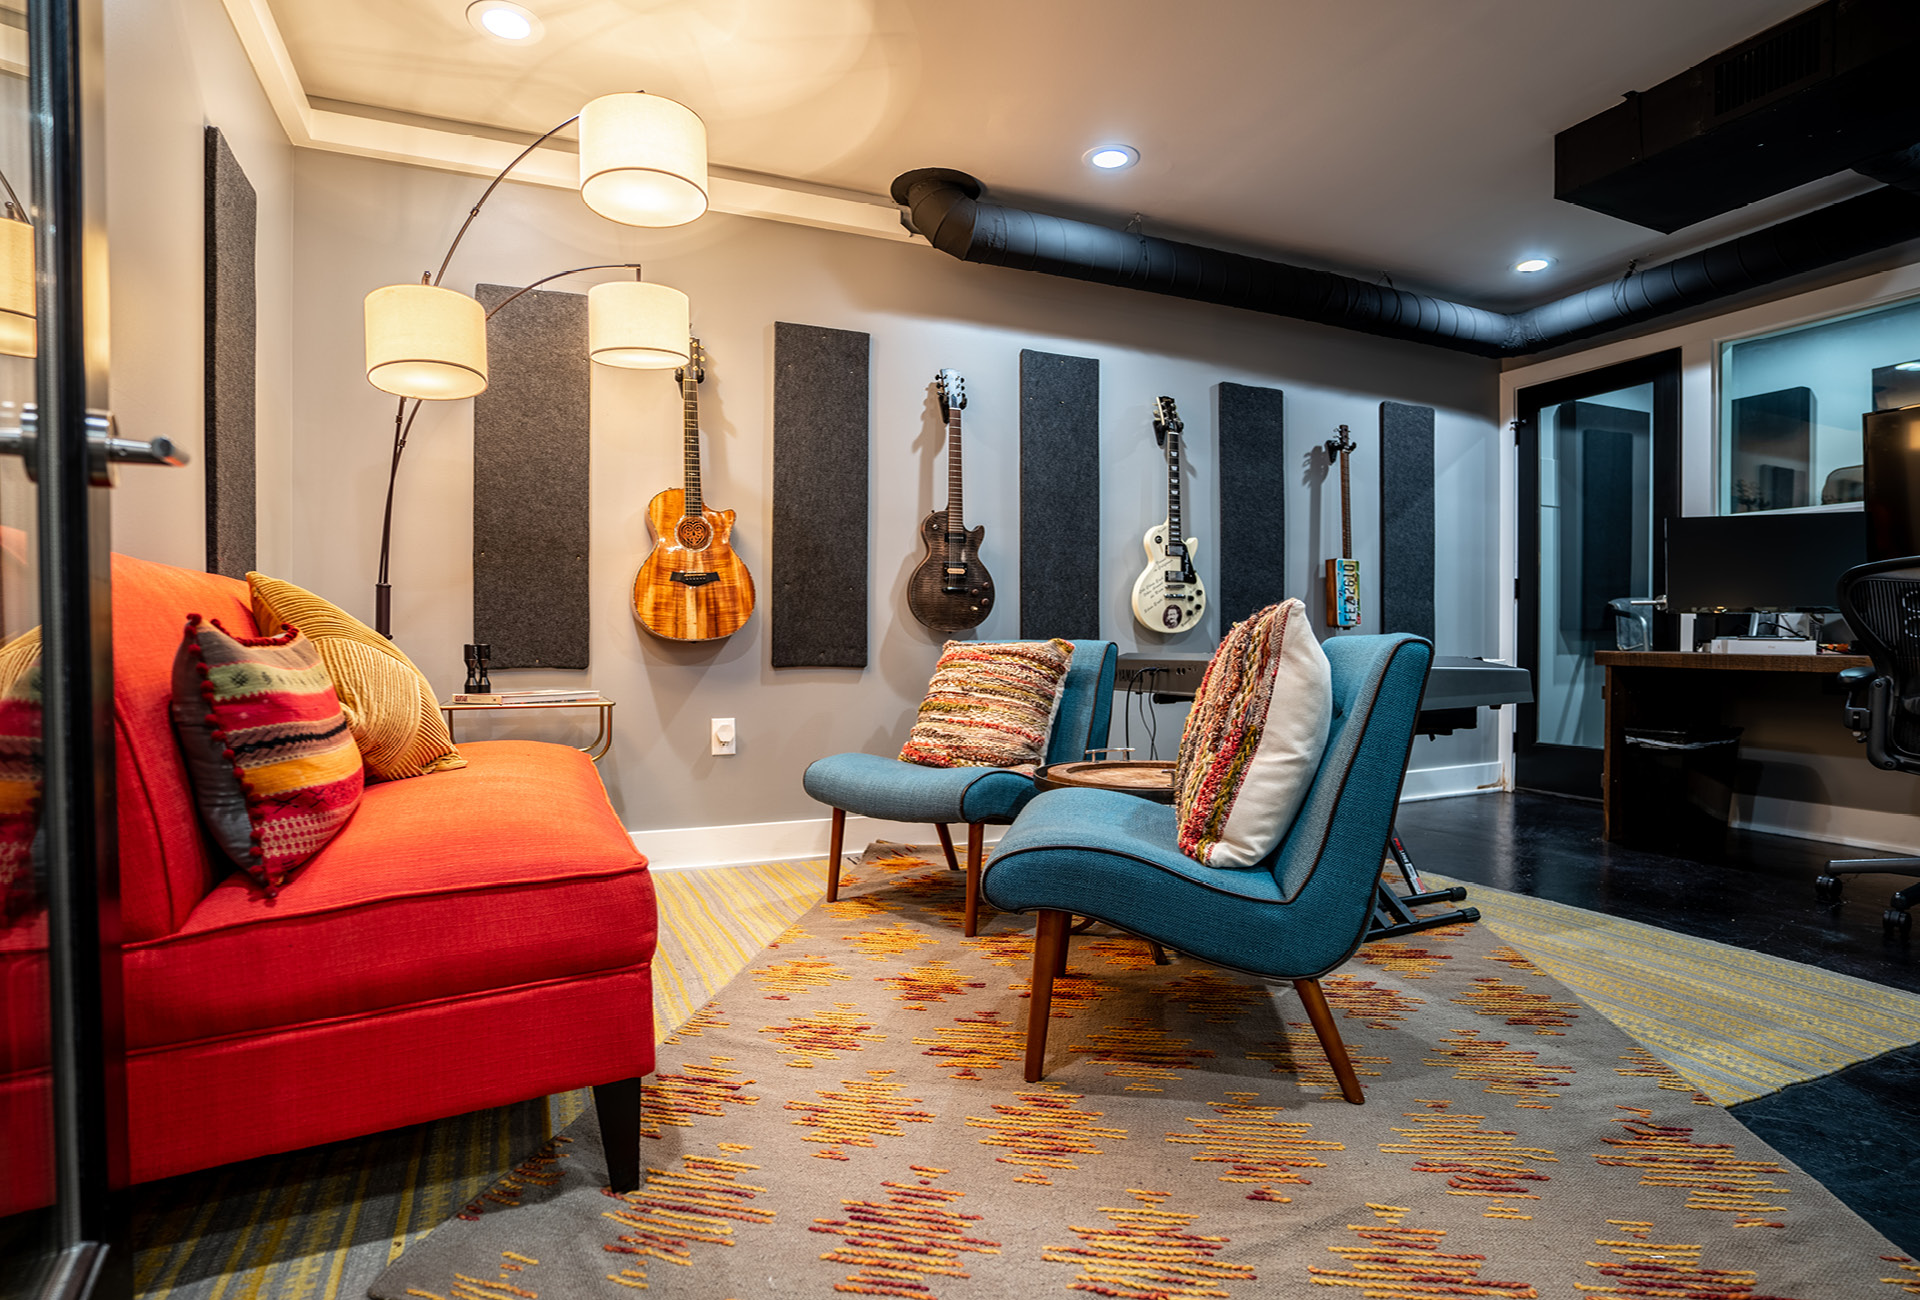 A recording room with keyboard, guitars, and plenty of seating